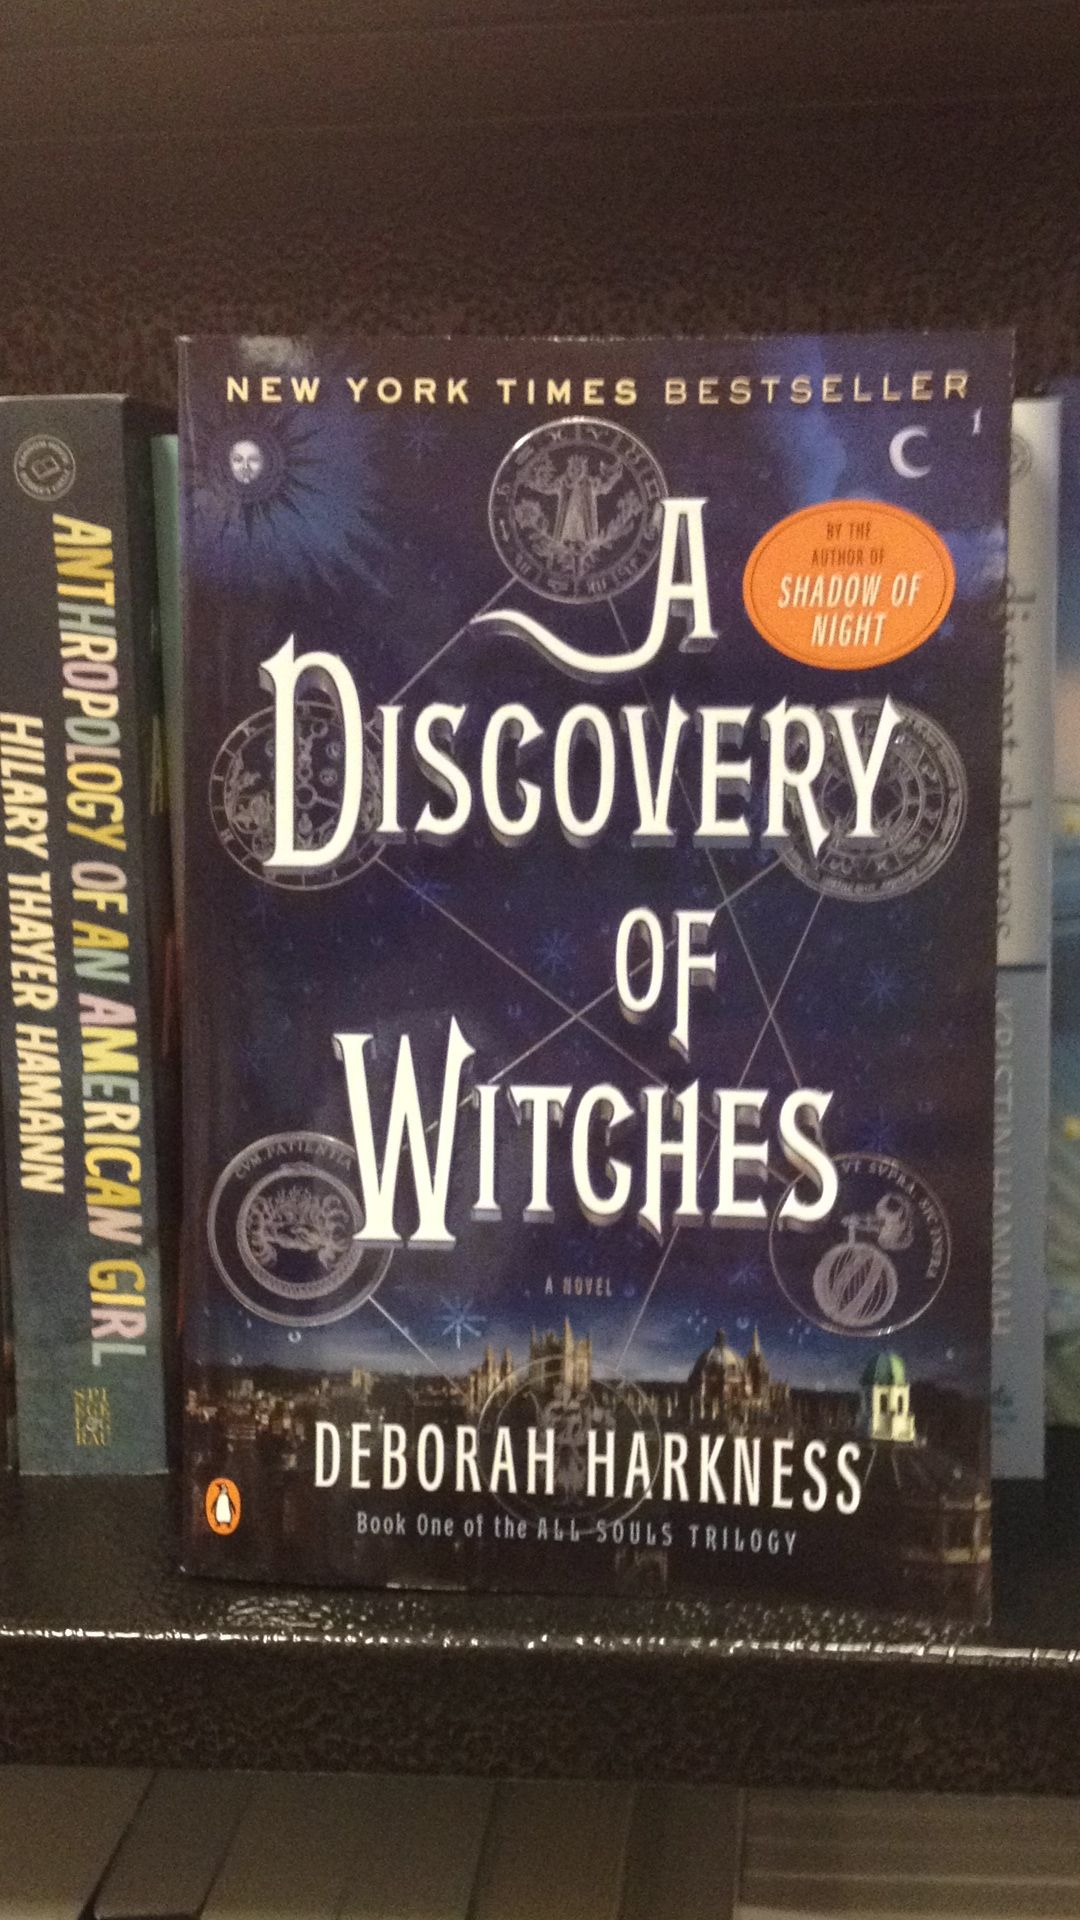 A discovery of witches by deborah harkness with images